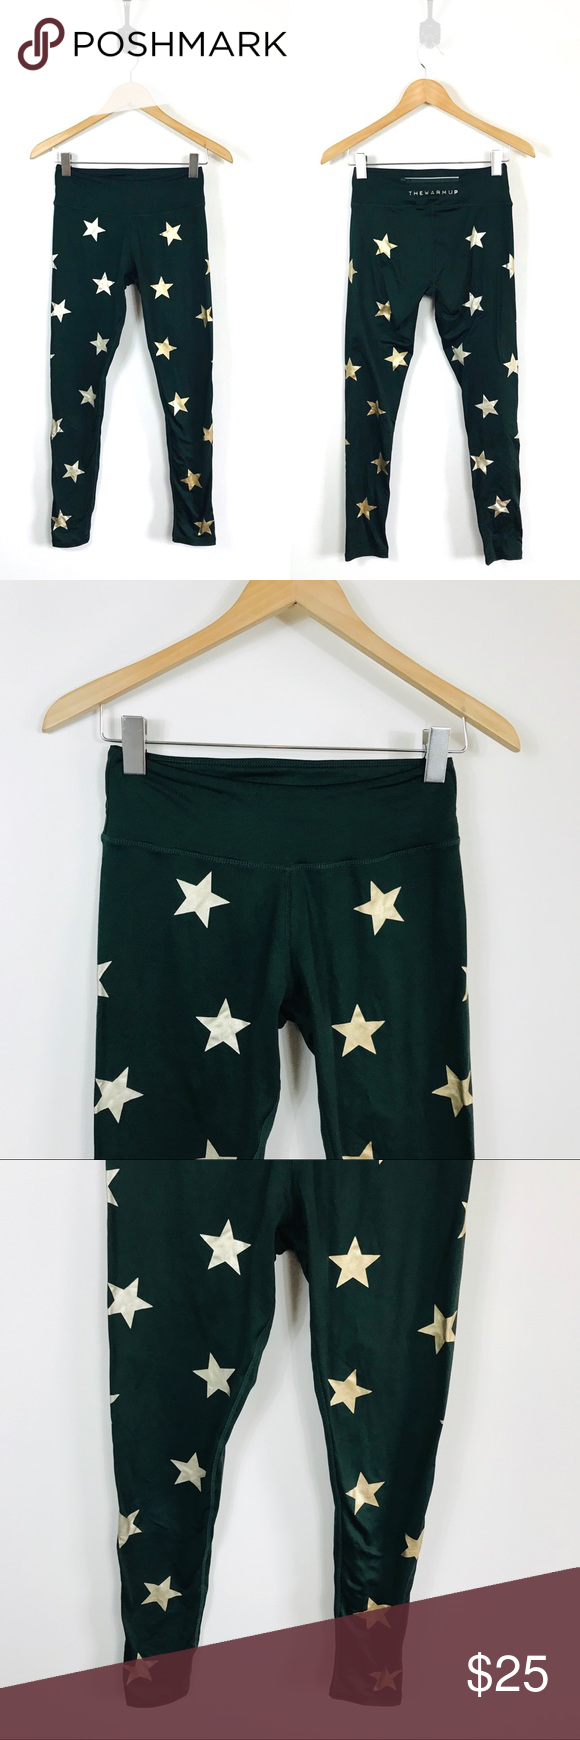 "4b0cd6731fcb98 Jessica Simpson Small Warm Up Green Star Leggings Jessica Simpson Small  Dark Green Star Leggings Hunter green color with gold stars Back zippered  pocket 26"" ..."